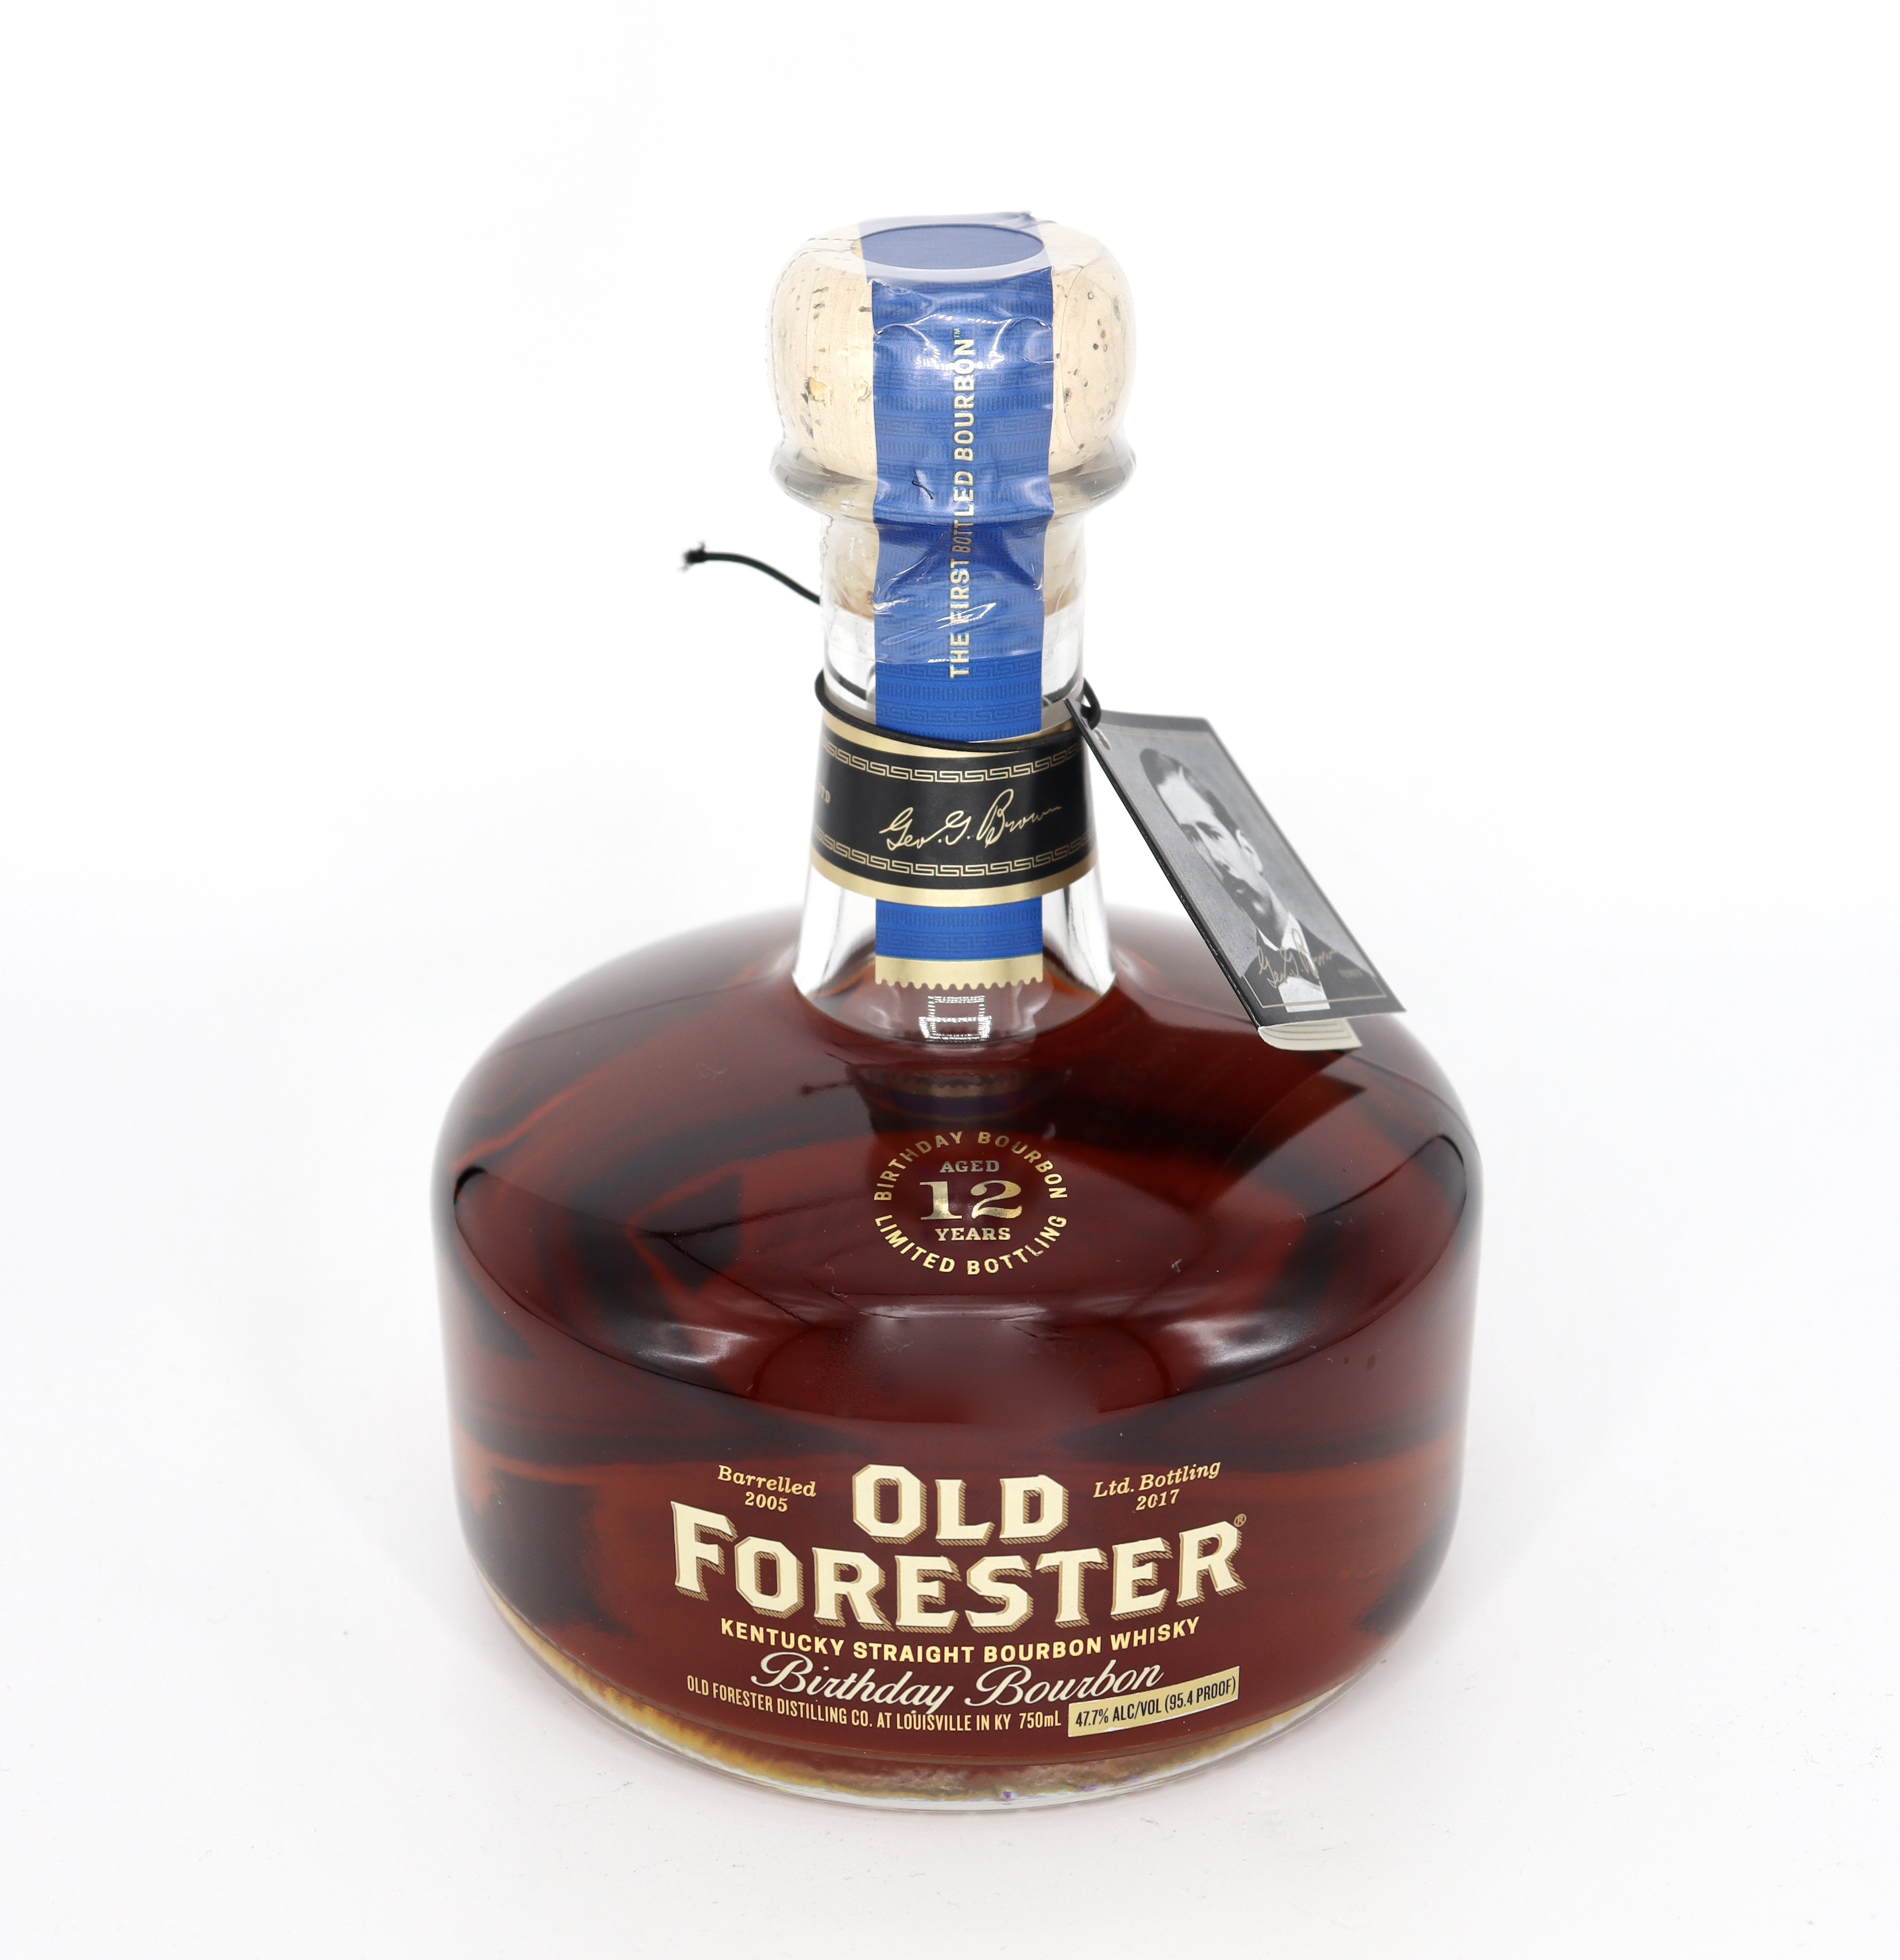 Old Forester Birthday 12 years aged 2017 bottling 95.4 proof